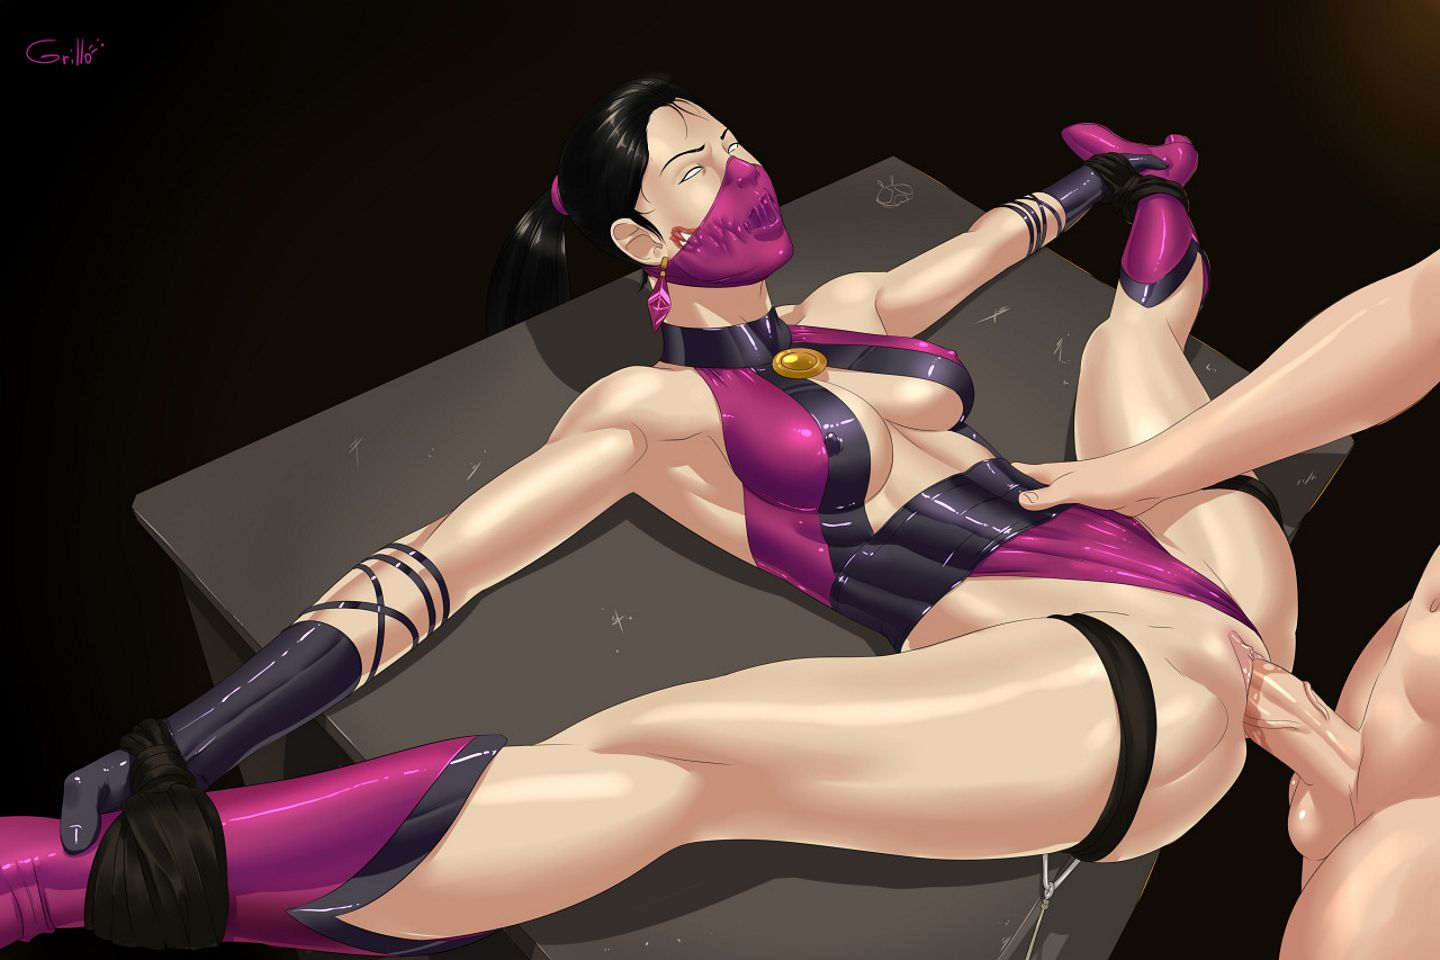 Mortal kombat armageddon nude girls photos softcore pic